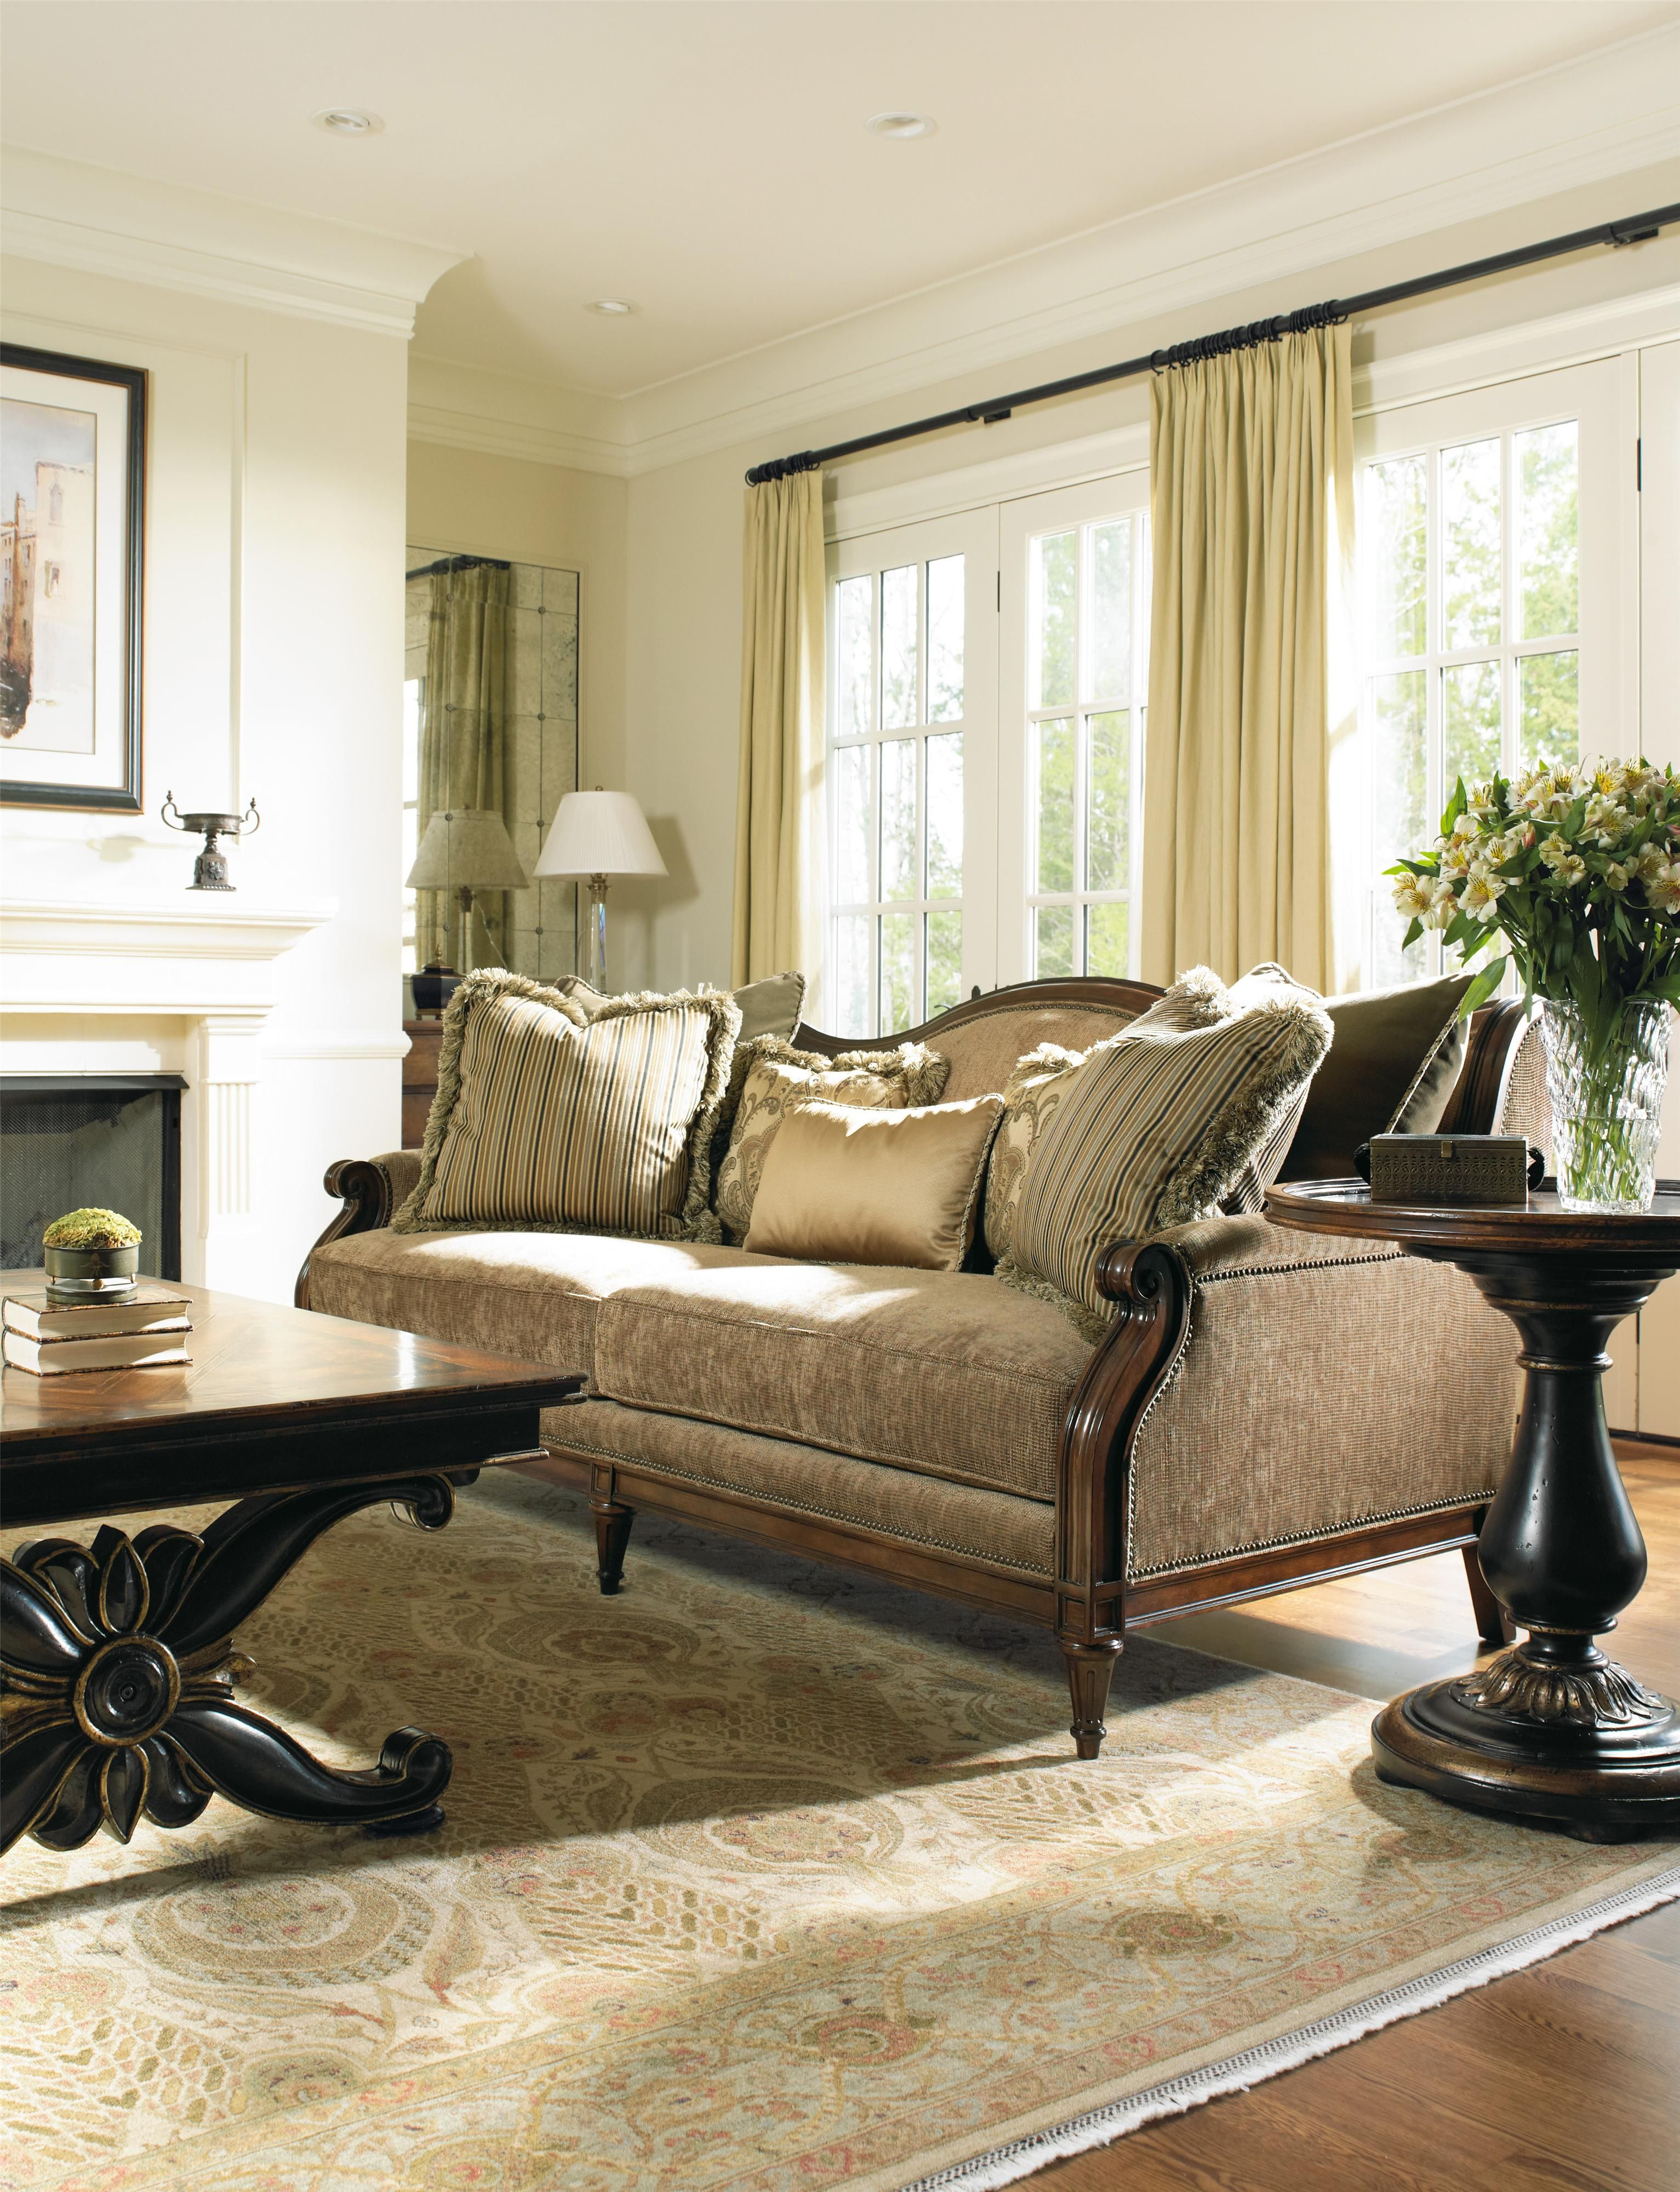 Grandover Camel Back Sofa With Exposed Wood Frame And Nailhead Trim By  Hooker Furniture   Gill Brothers Furniture   Sofa Muncie, Anderson, Madison  County, ...